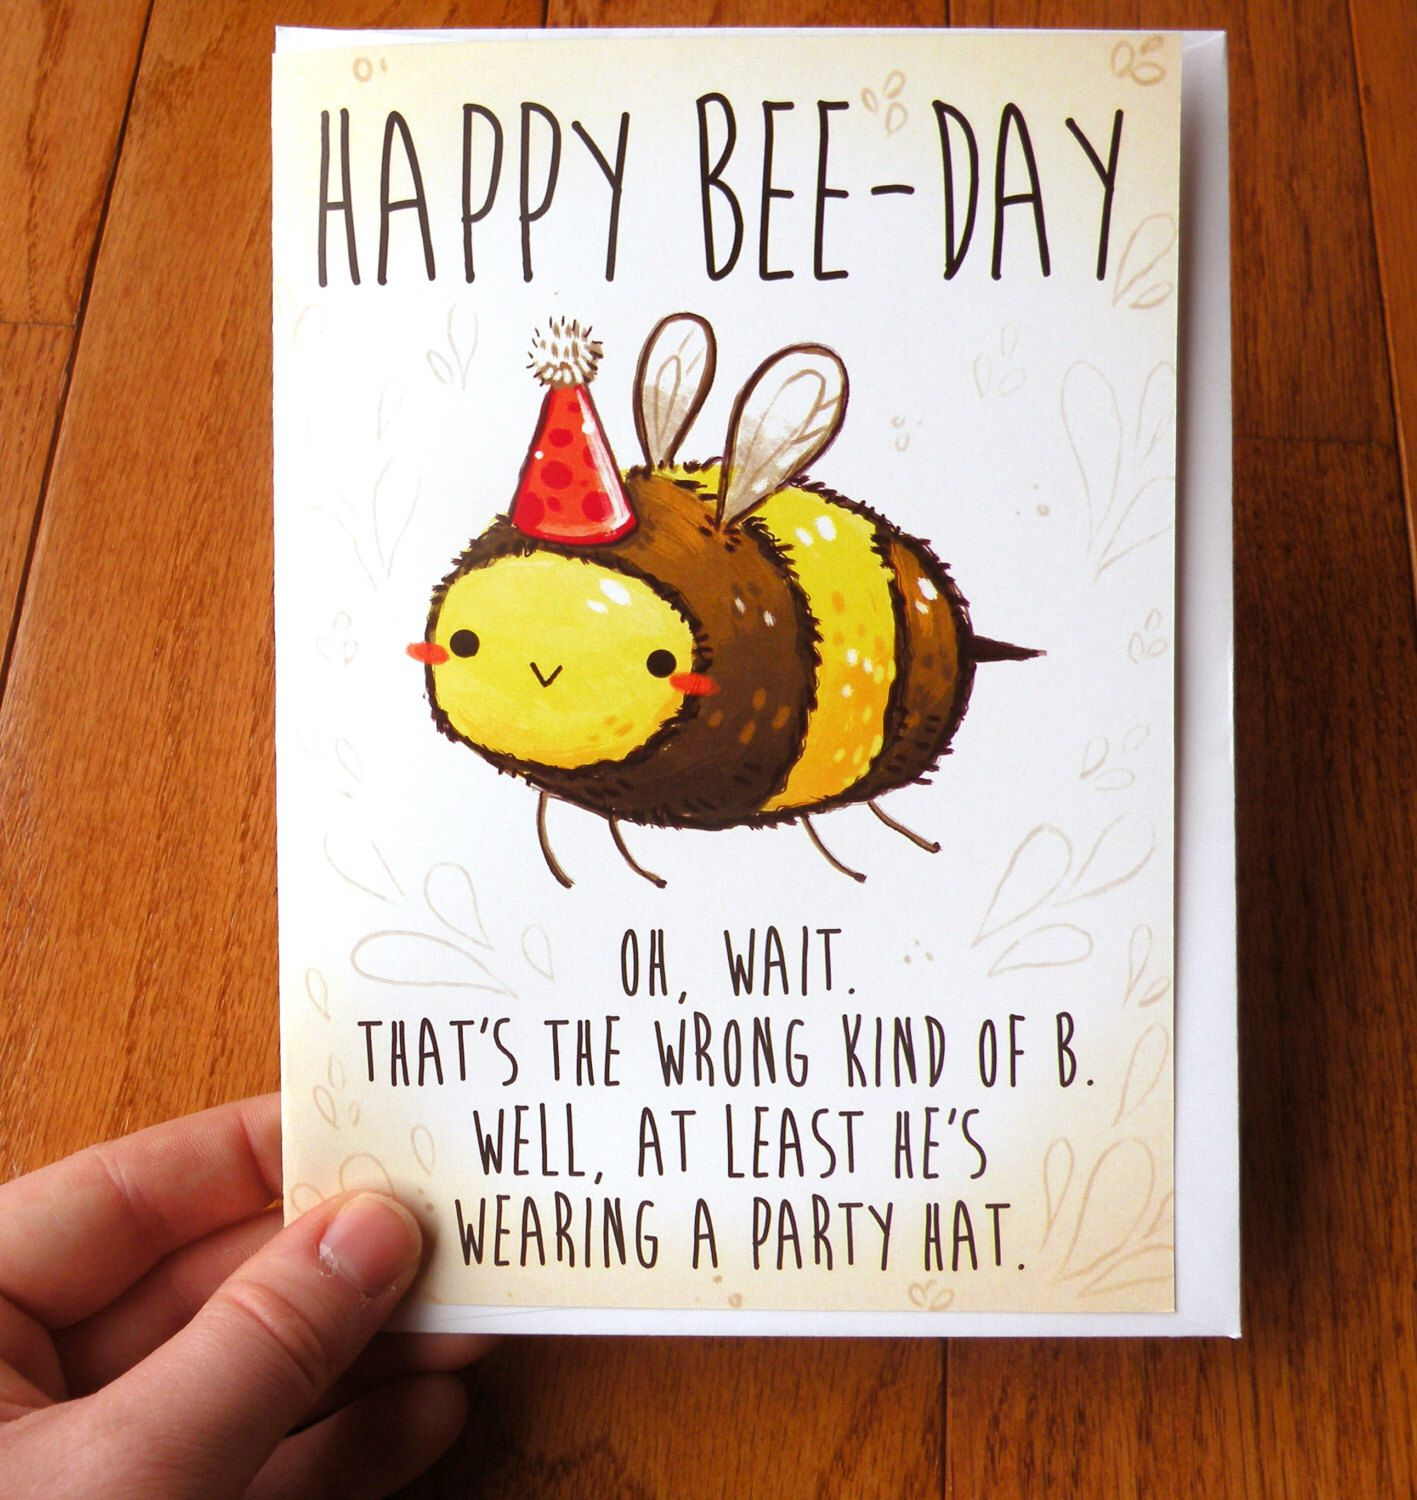 Funny birthday card bee card cards cute cards by michiscribbles funny birthday card bee card cards cute cards by michiscribbles on etsy https kristyandbryce Gallery